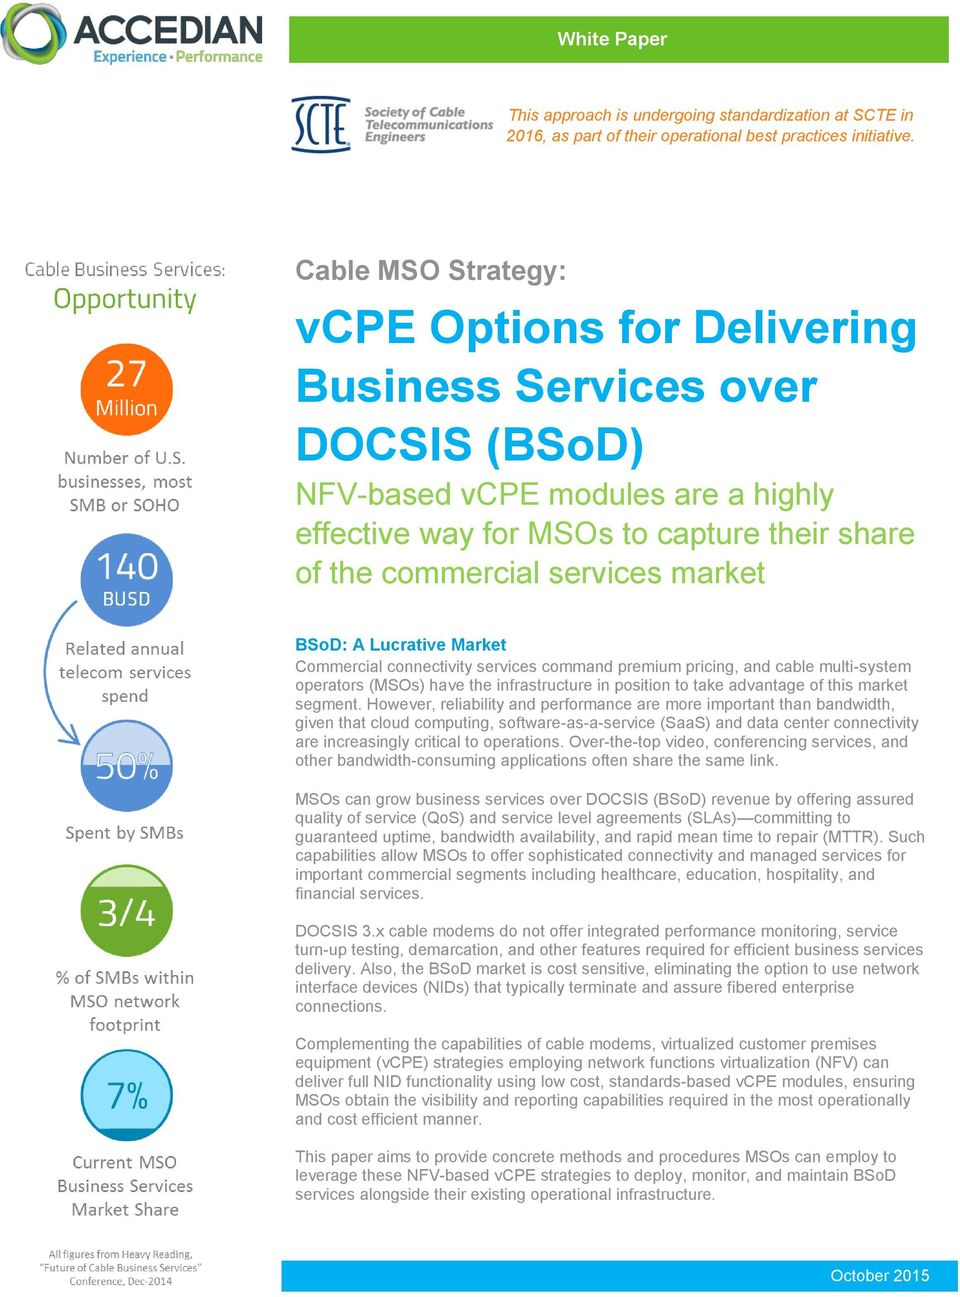 market ckhaul networks BSoD: A Lucrative Market Commercial connectivity services command premium pricing, and cable multi-system operators (MSOs) have the infrastructure in position to take advantage